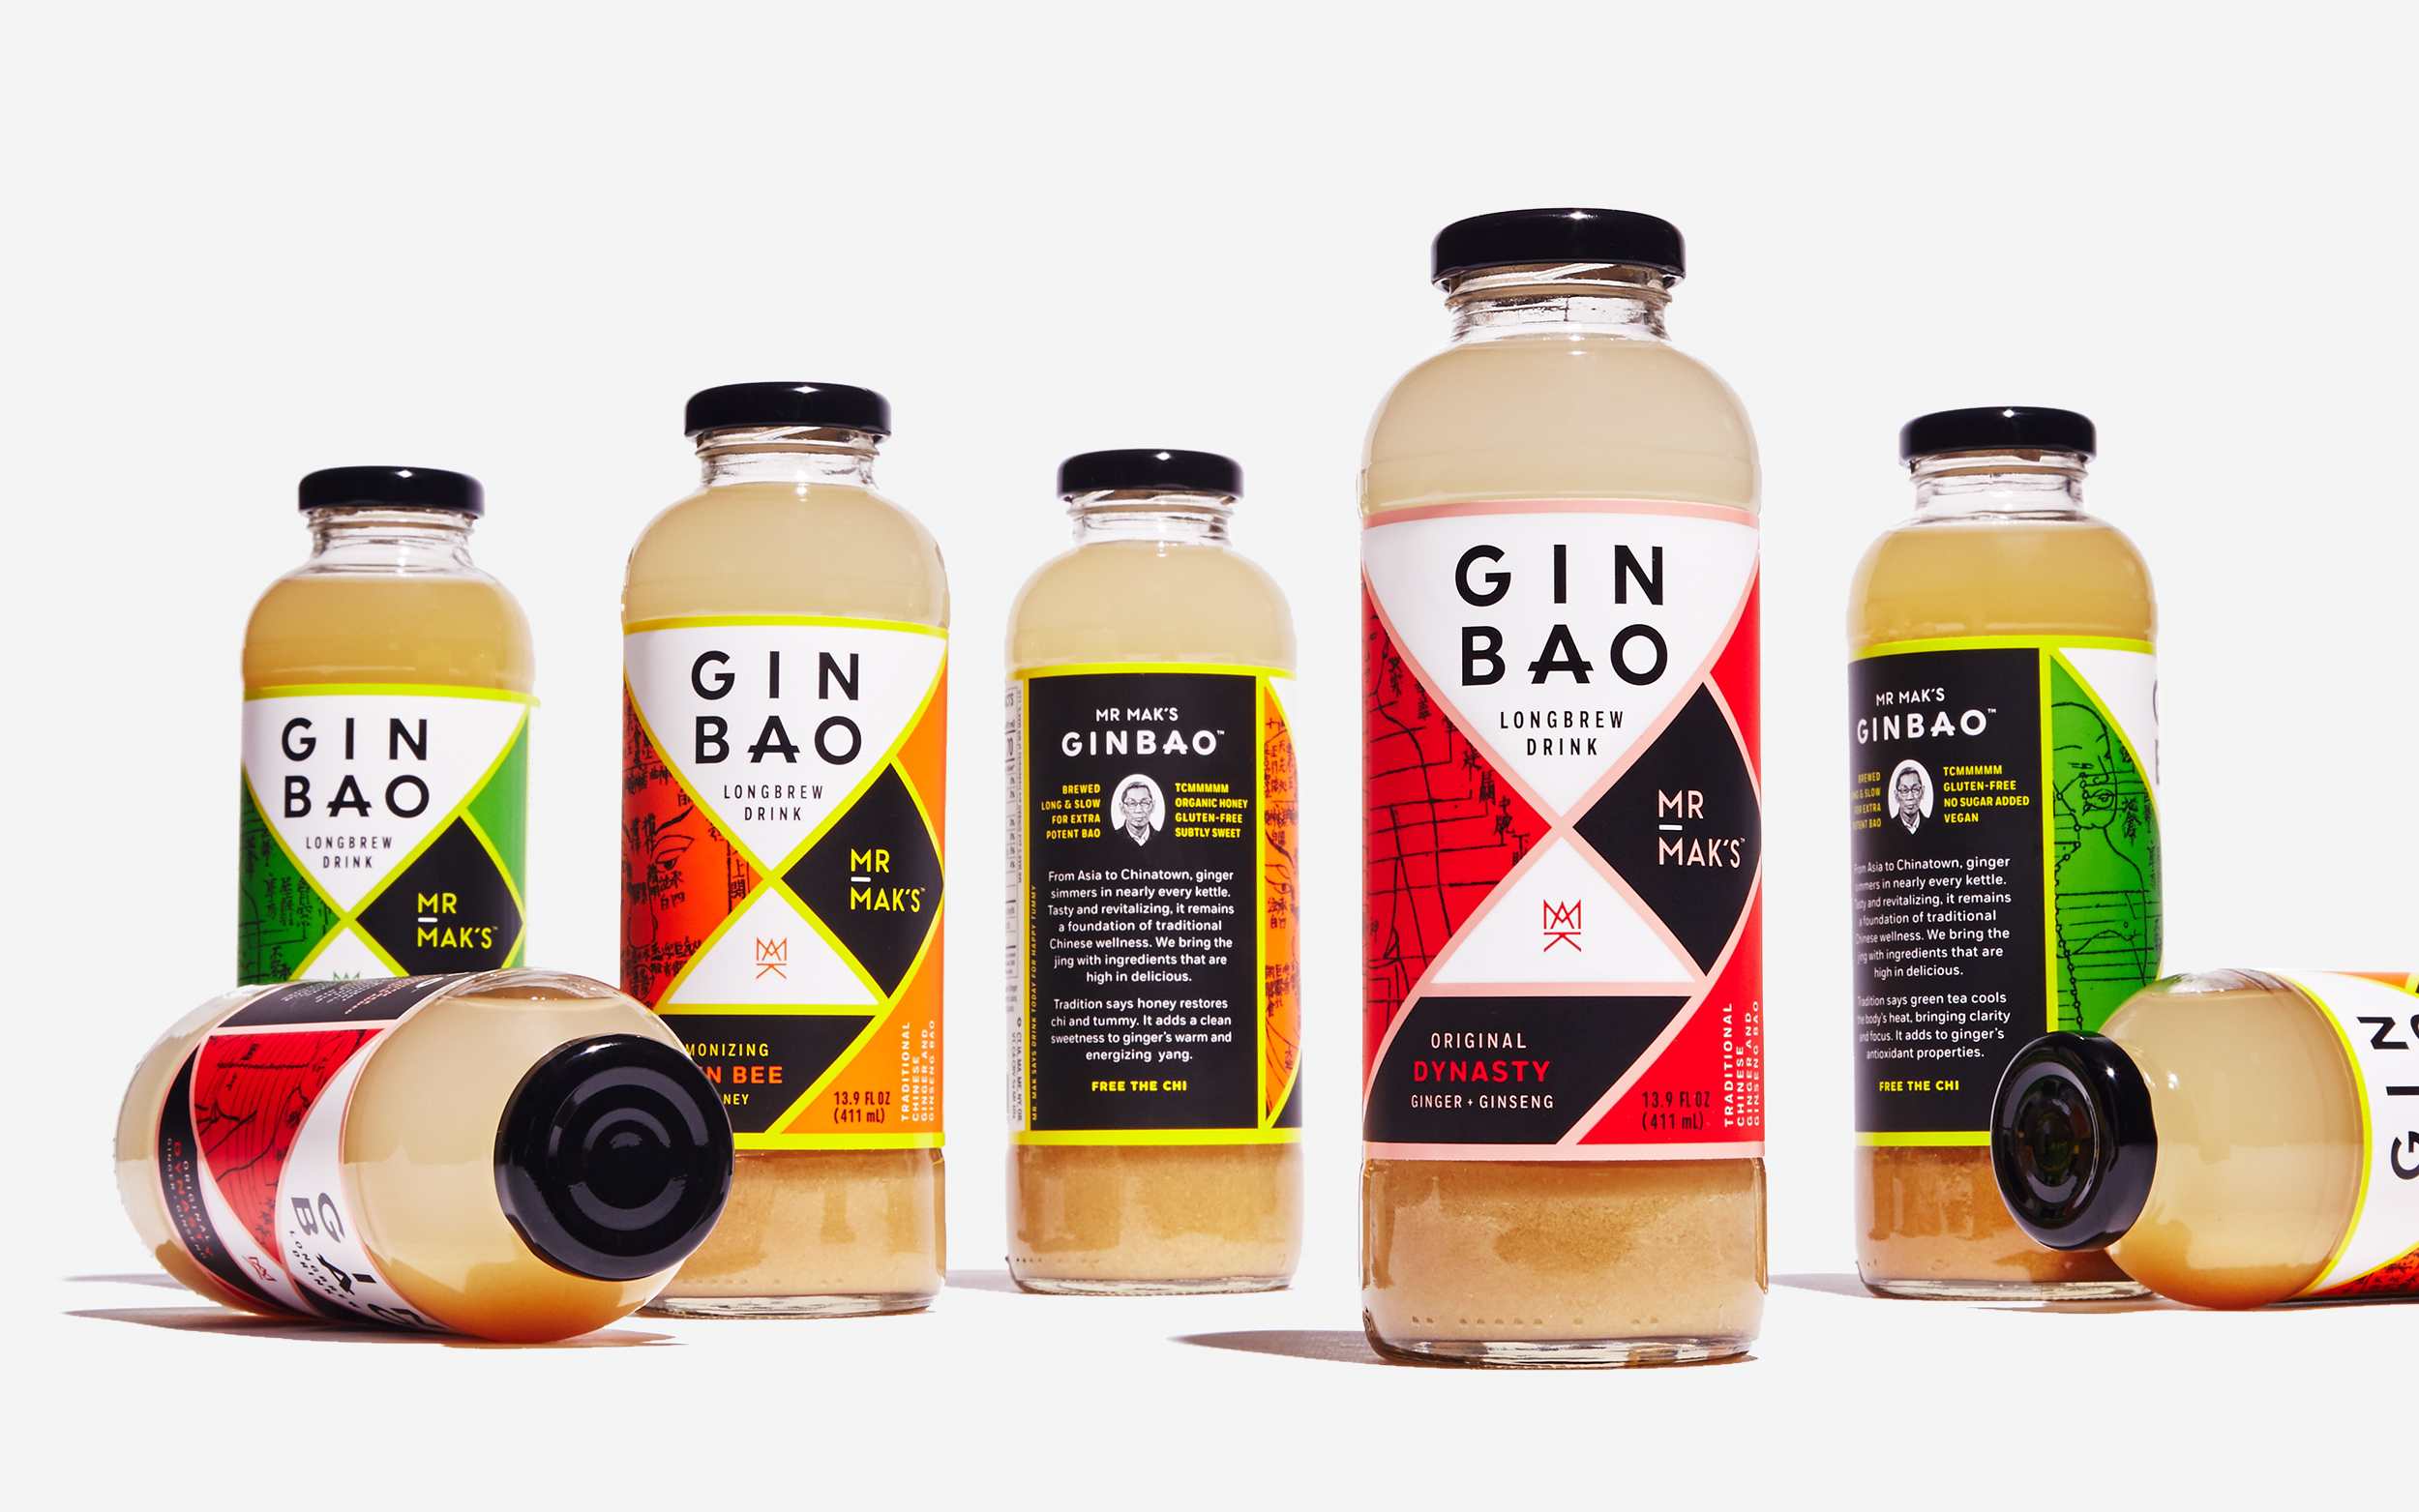 Mr. Mak's Ginbao packaging design. Dynasty, Queen Bee, and Dragonwell bottles. Designed by Abby Haddican at Werner Design Werks.